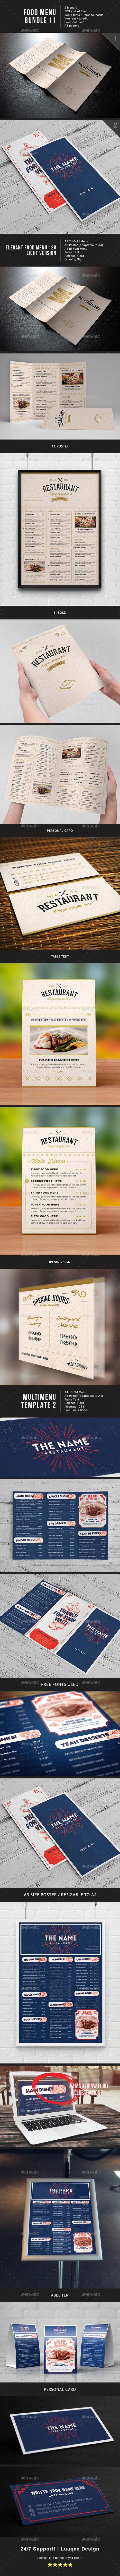 Food Menu Bundle 11 - Food Menus Print Templates